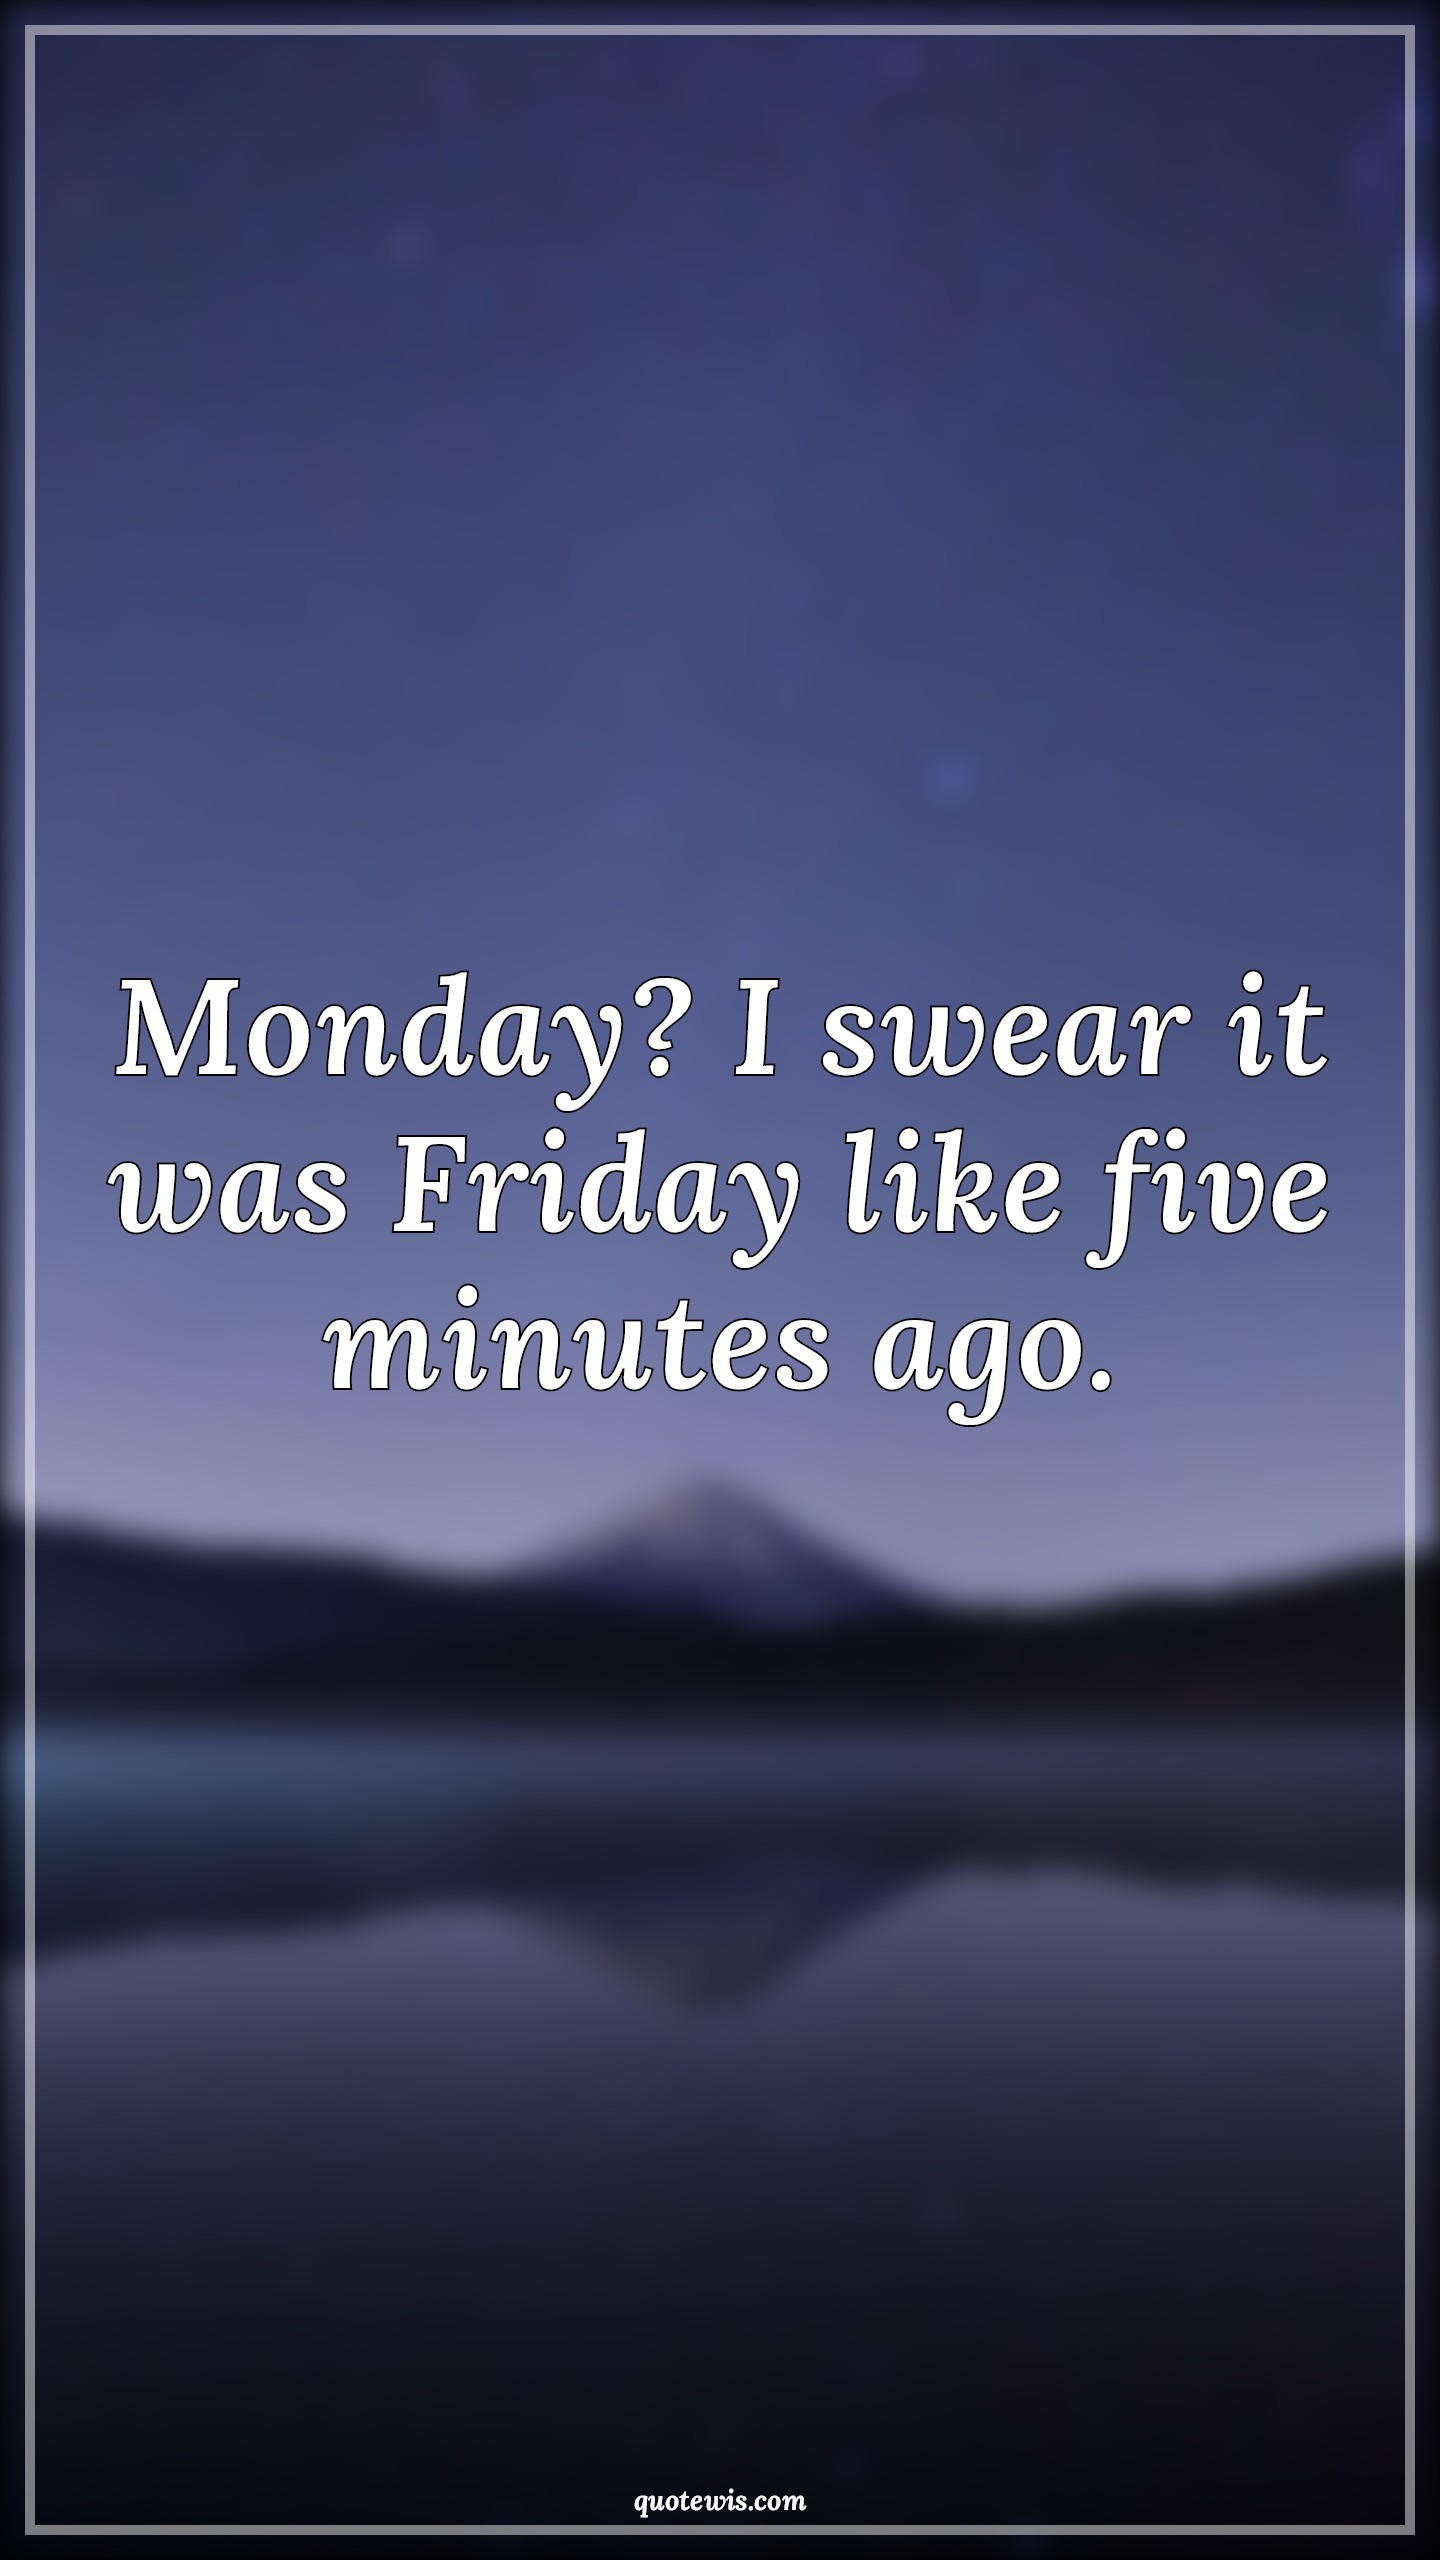 Monday? I swear it was Friday like five minutes ago.